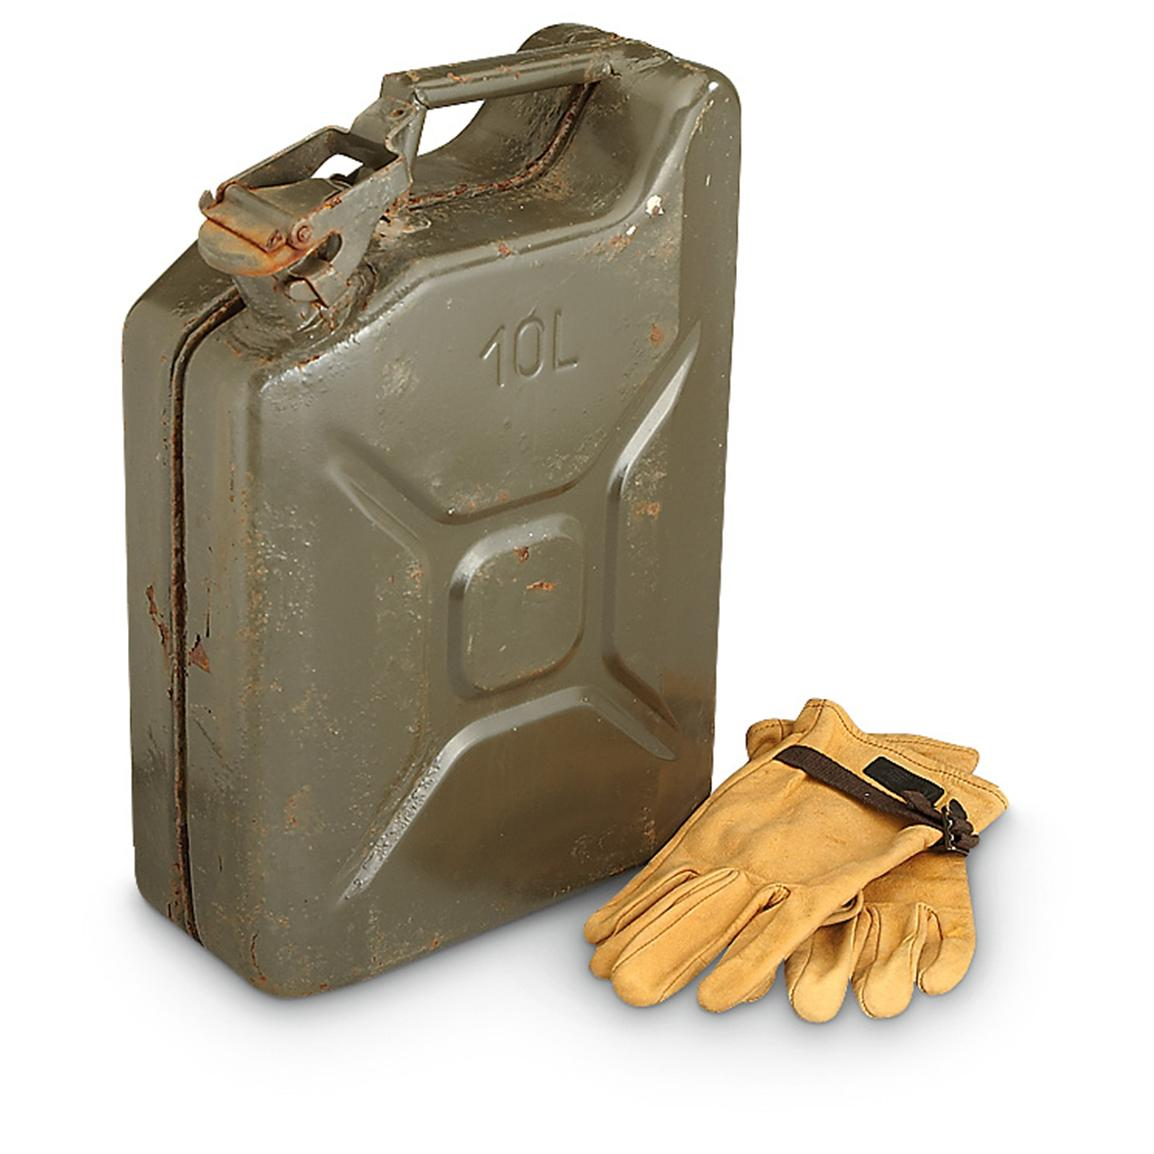 Used Czech Military NATO-style 10L Jerry Can